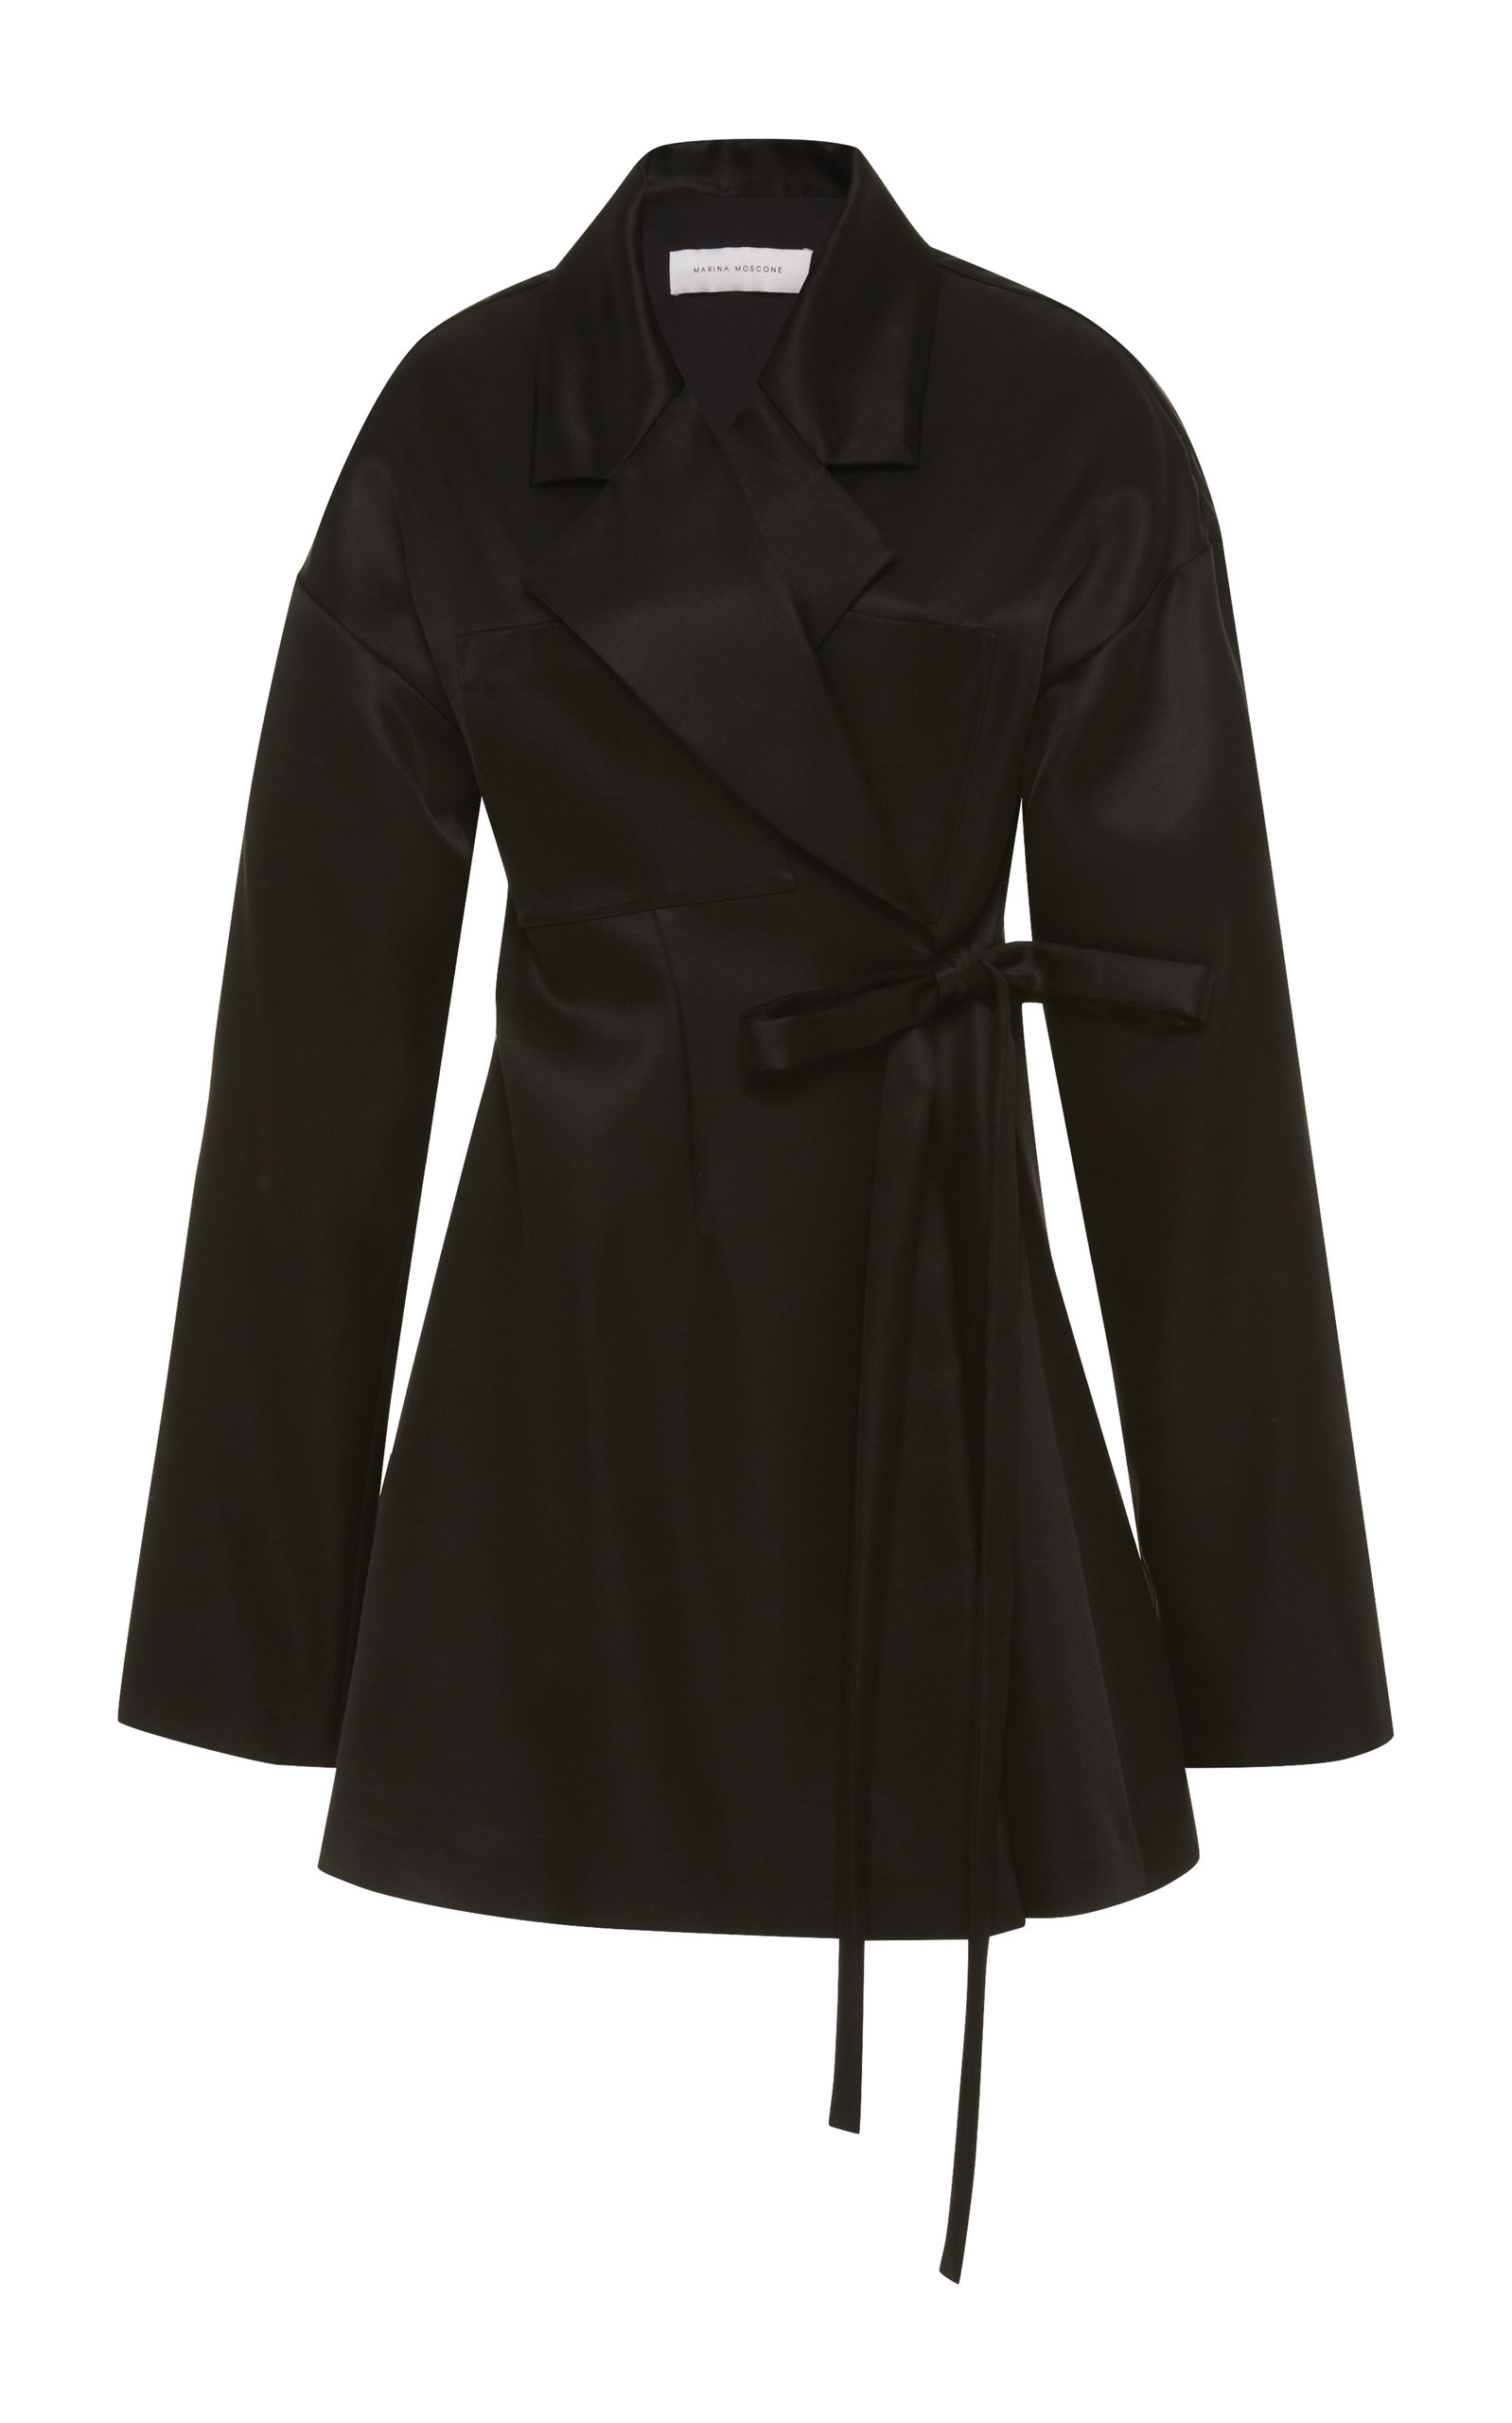 MARINA MOSCONE Waist-Tie Silk-Satin Jacket in Black